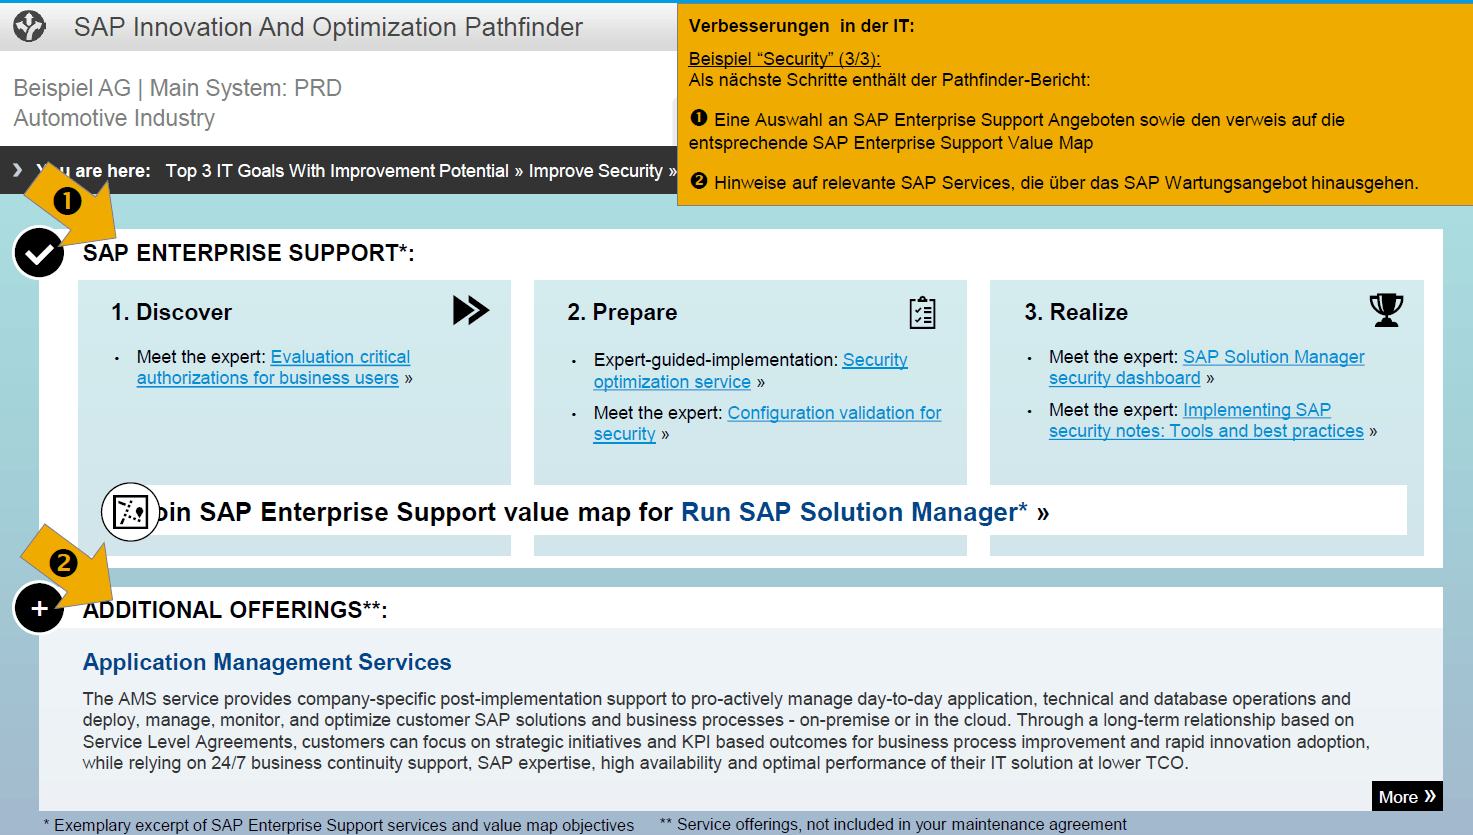 Blog_Screen_SAP Pathfinder_IT-Security 3